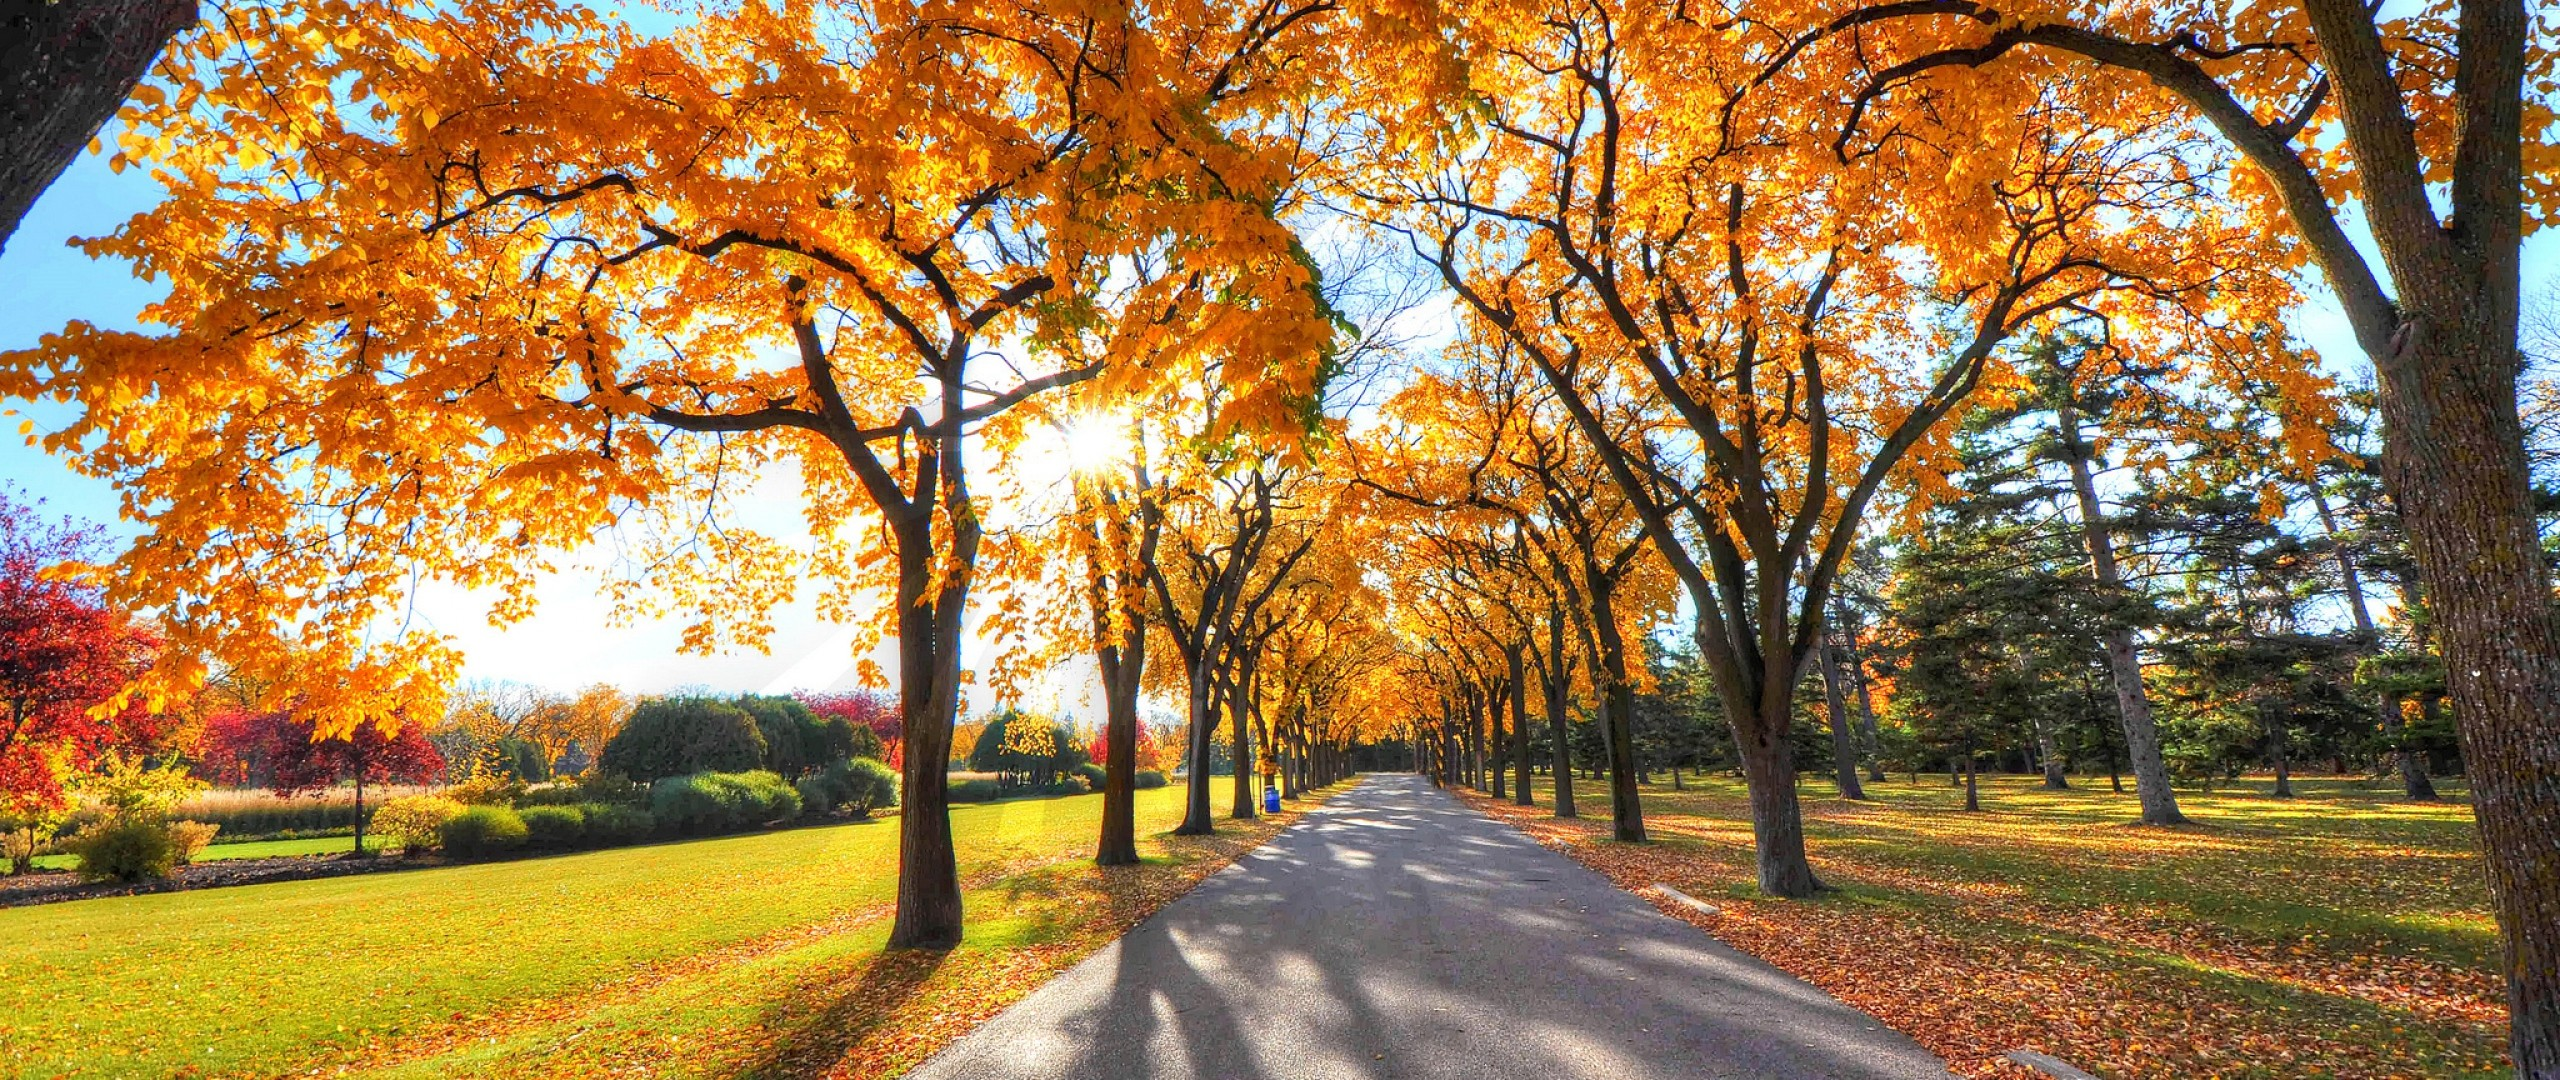 Falling Leaves Wallpaper For Iphone Autumn Screen Wallpaper 64 Images